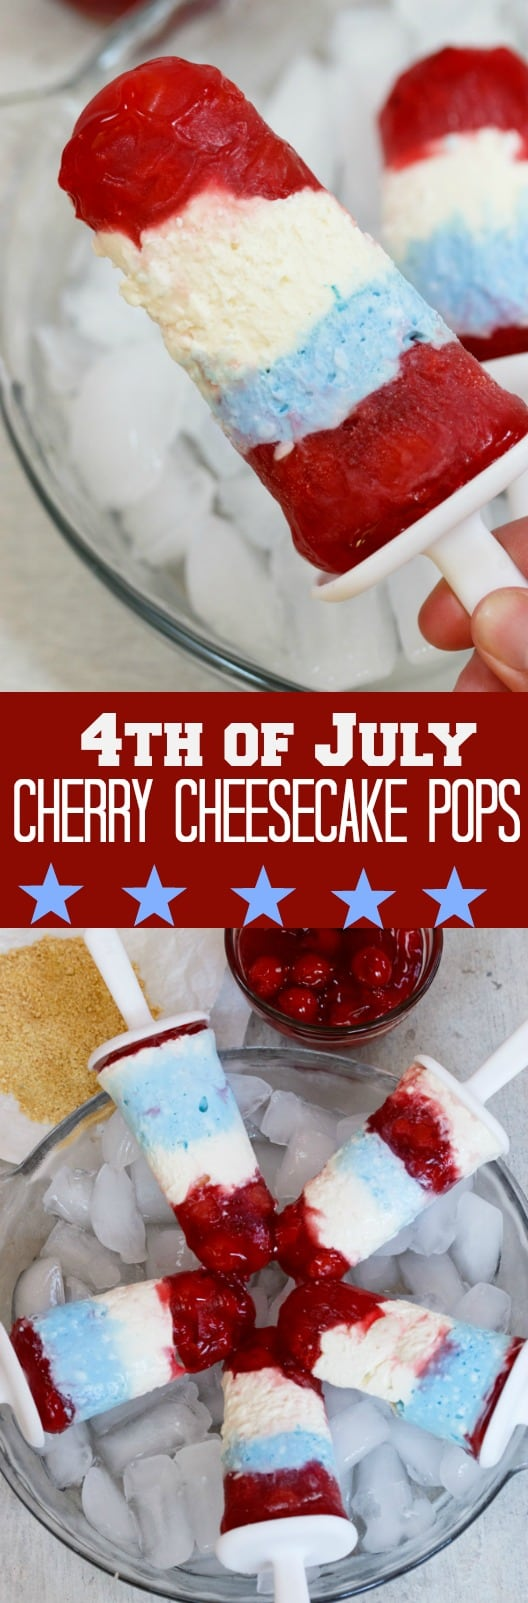 4th of July Cherry Cheesecake Popsicles